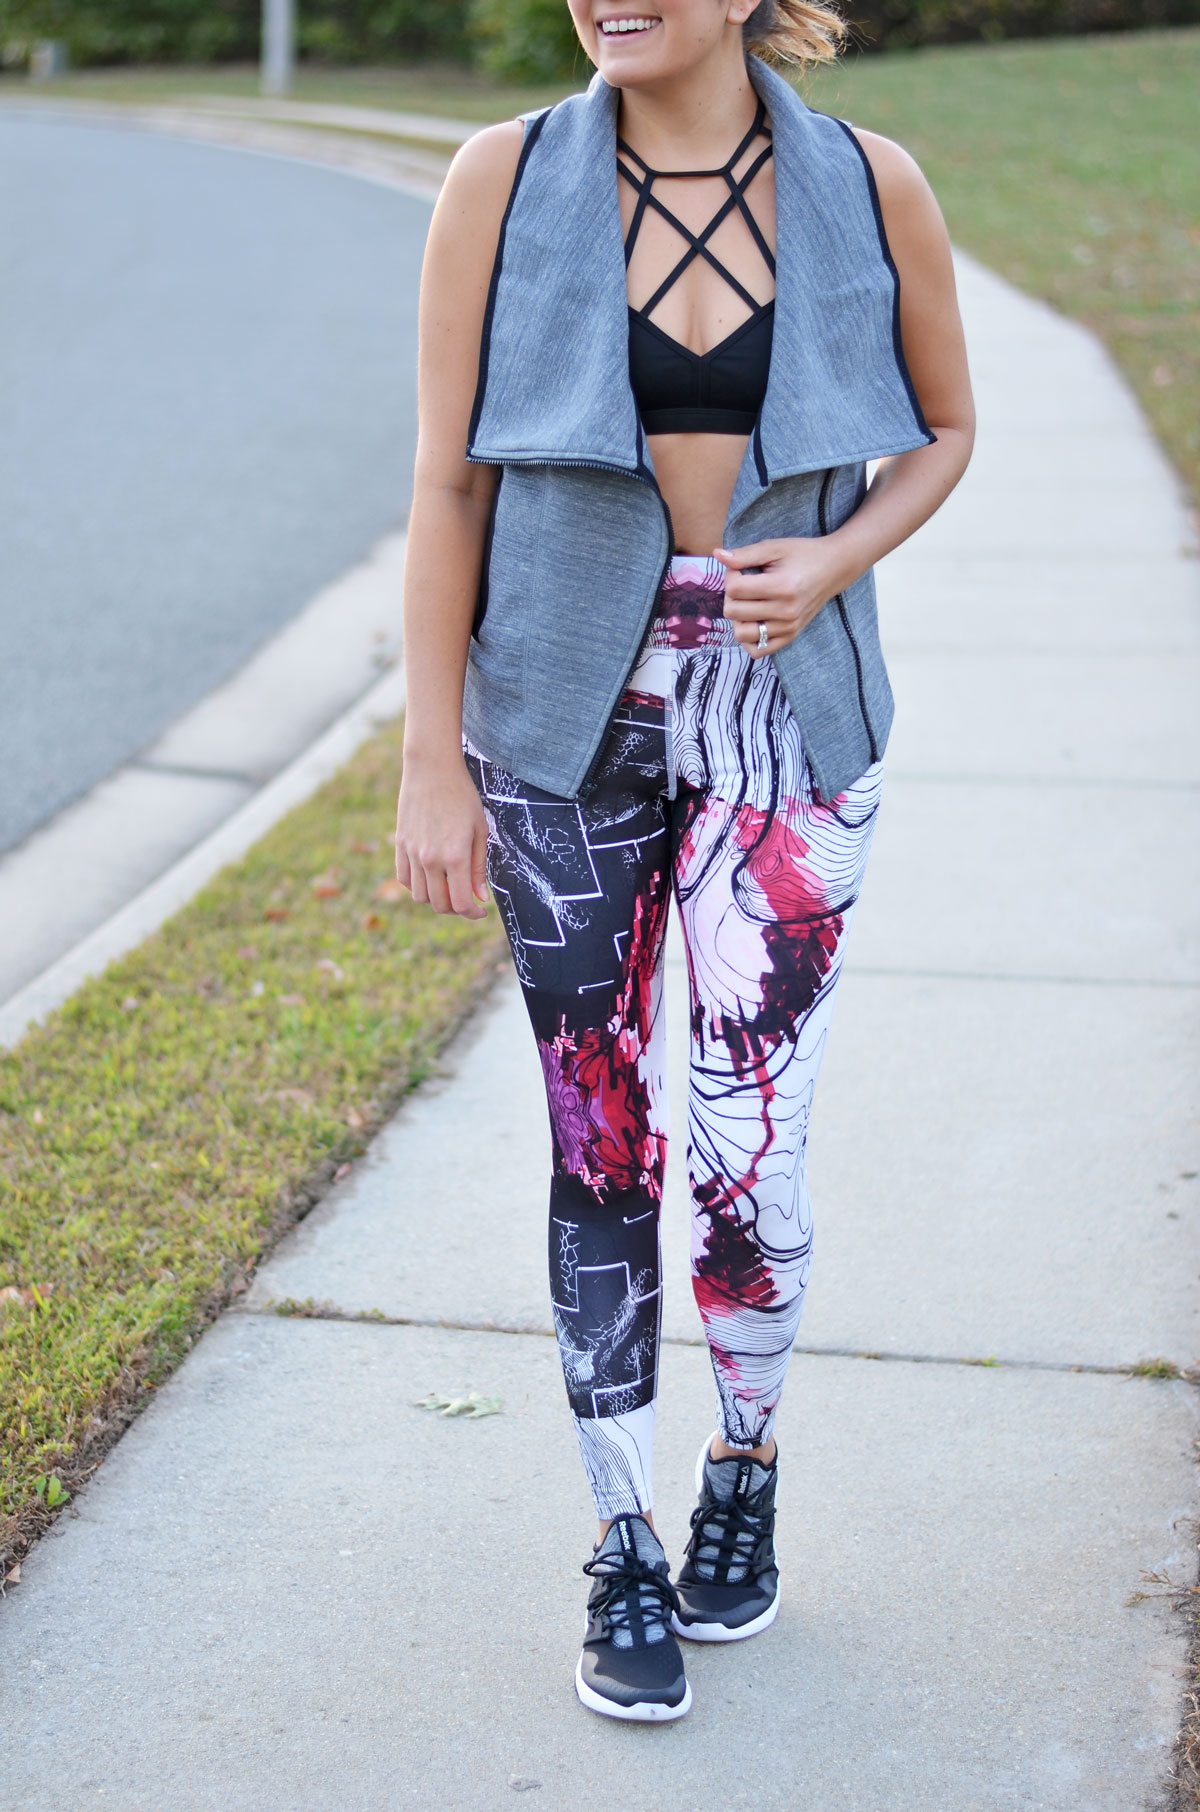 cute workout style - printed workout leggings and a strappy sports bra | www.fizzandfrosting.com